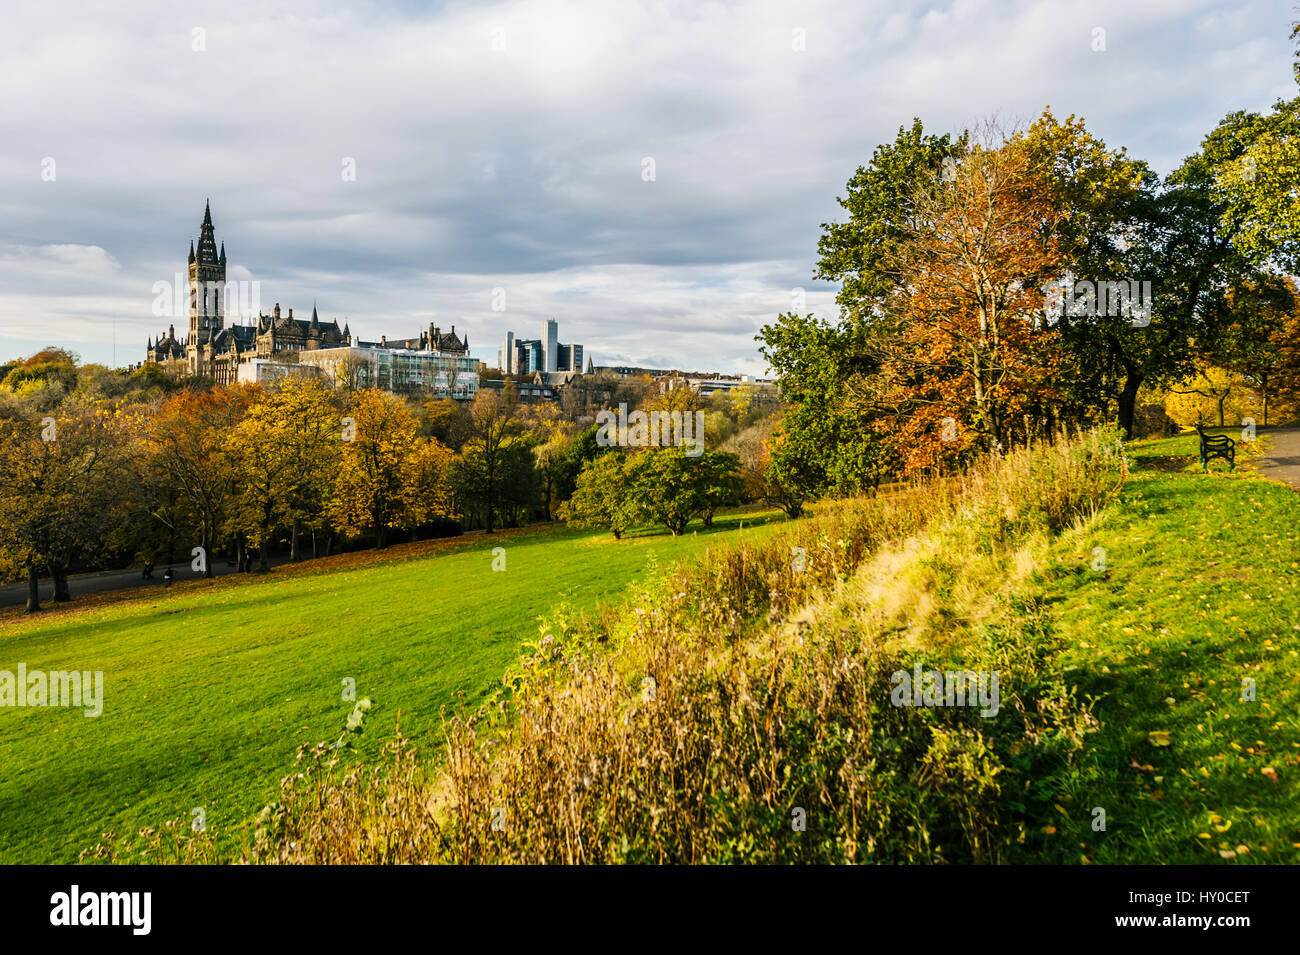 View of the Glasgow University from the Kelvingrove Park - Stock Image